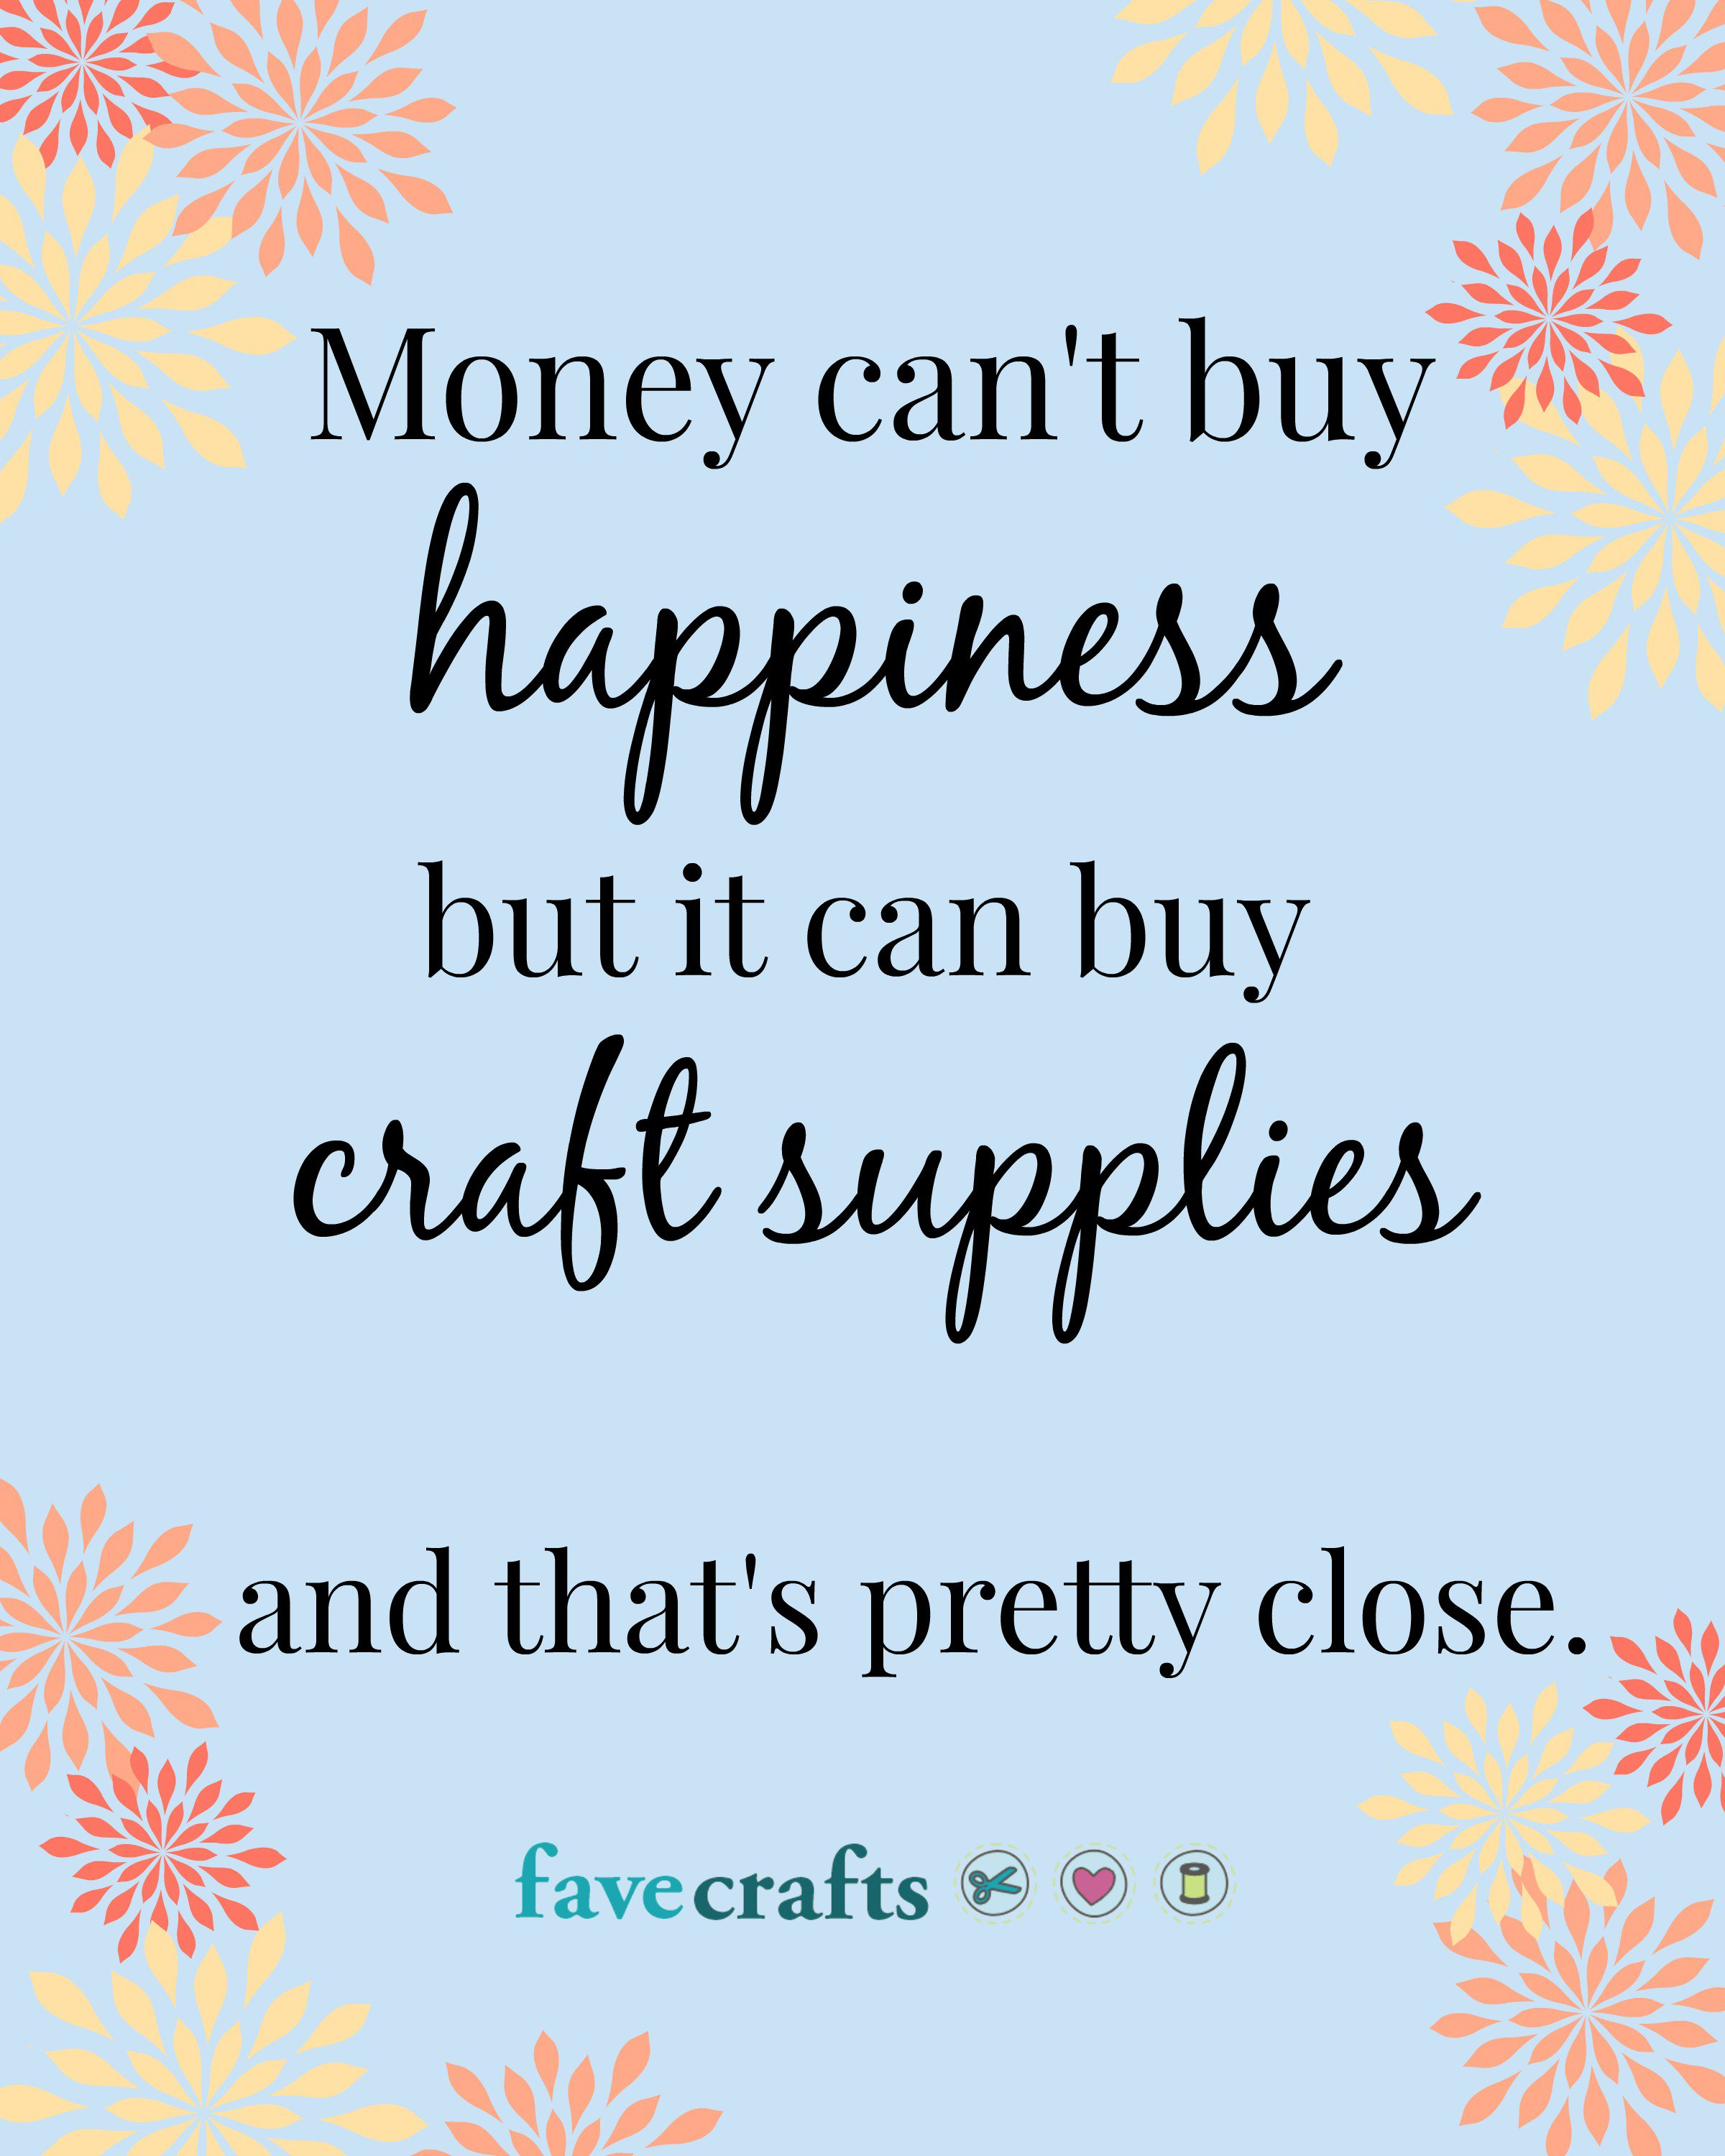 Quotes And Sayings: Craft Quotes And Sayings. QuotesGram